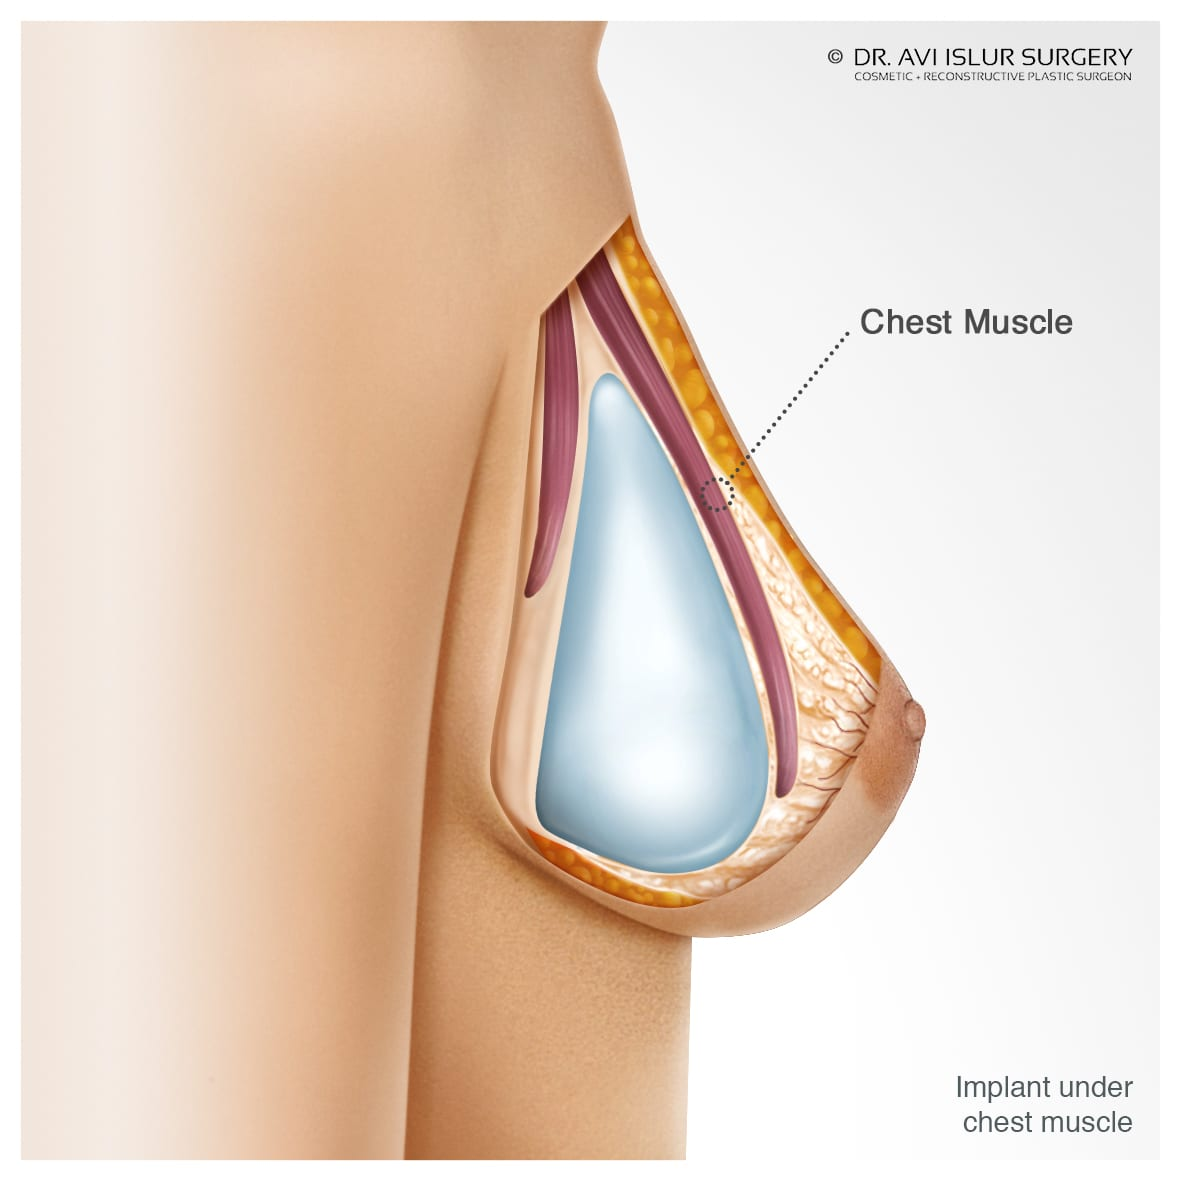 Illustration of the breast implant under chest muscle